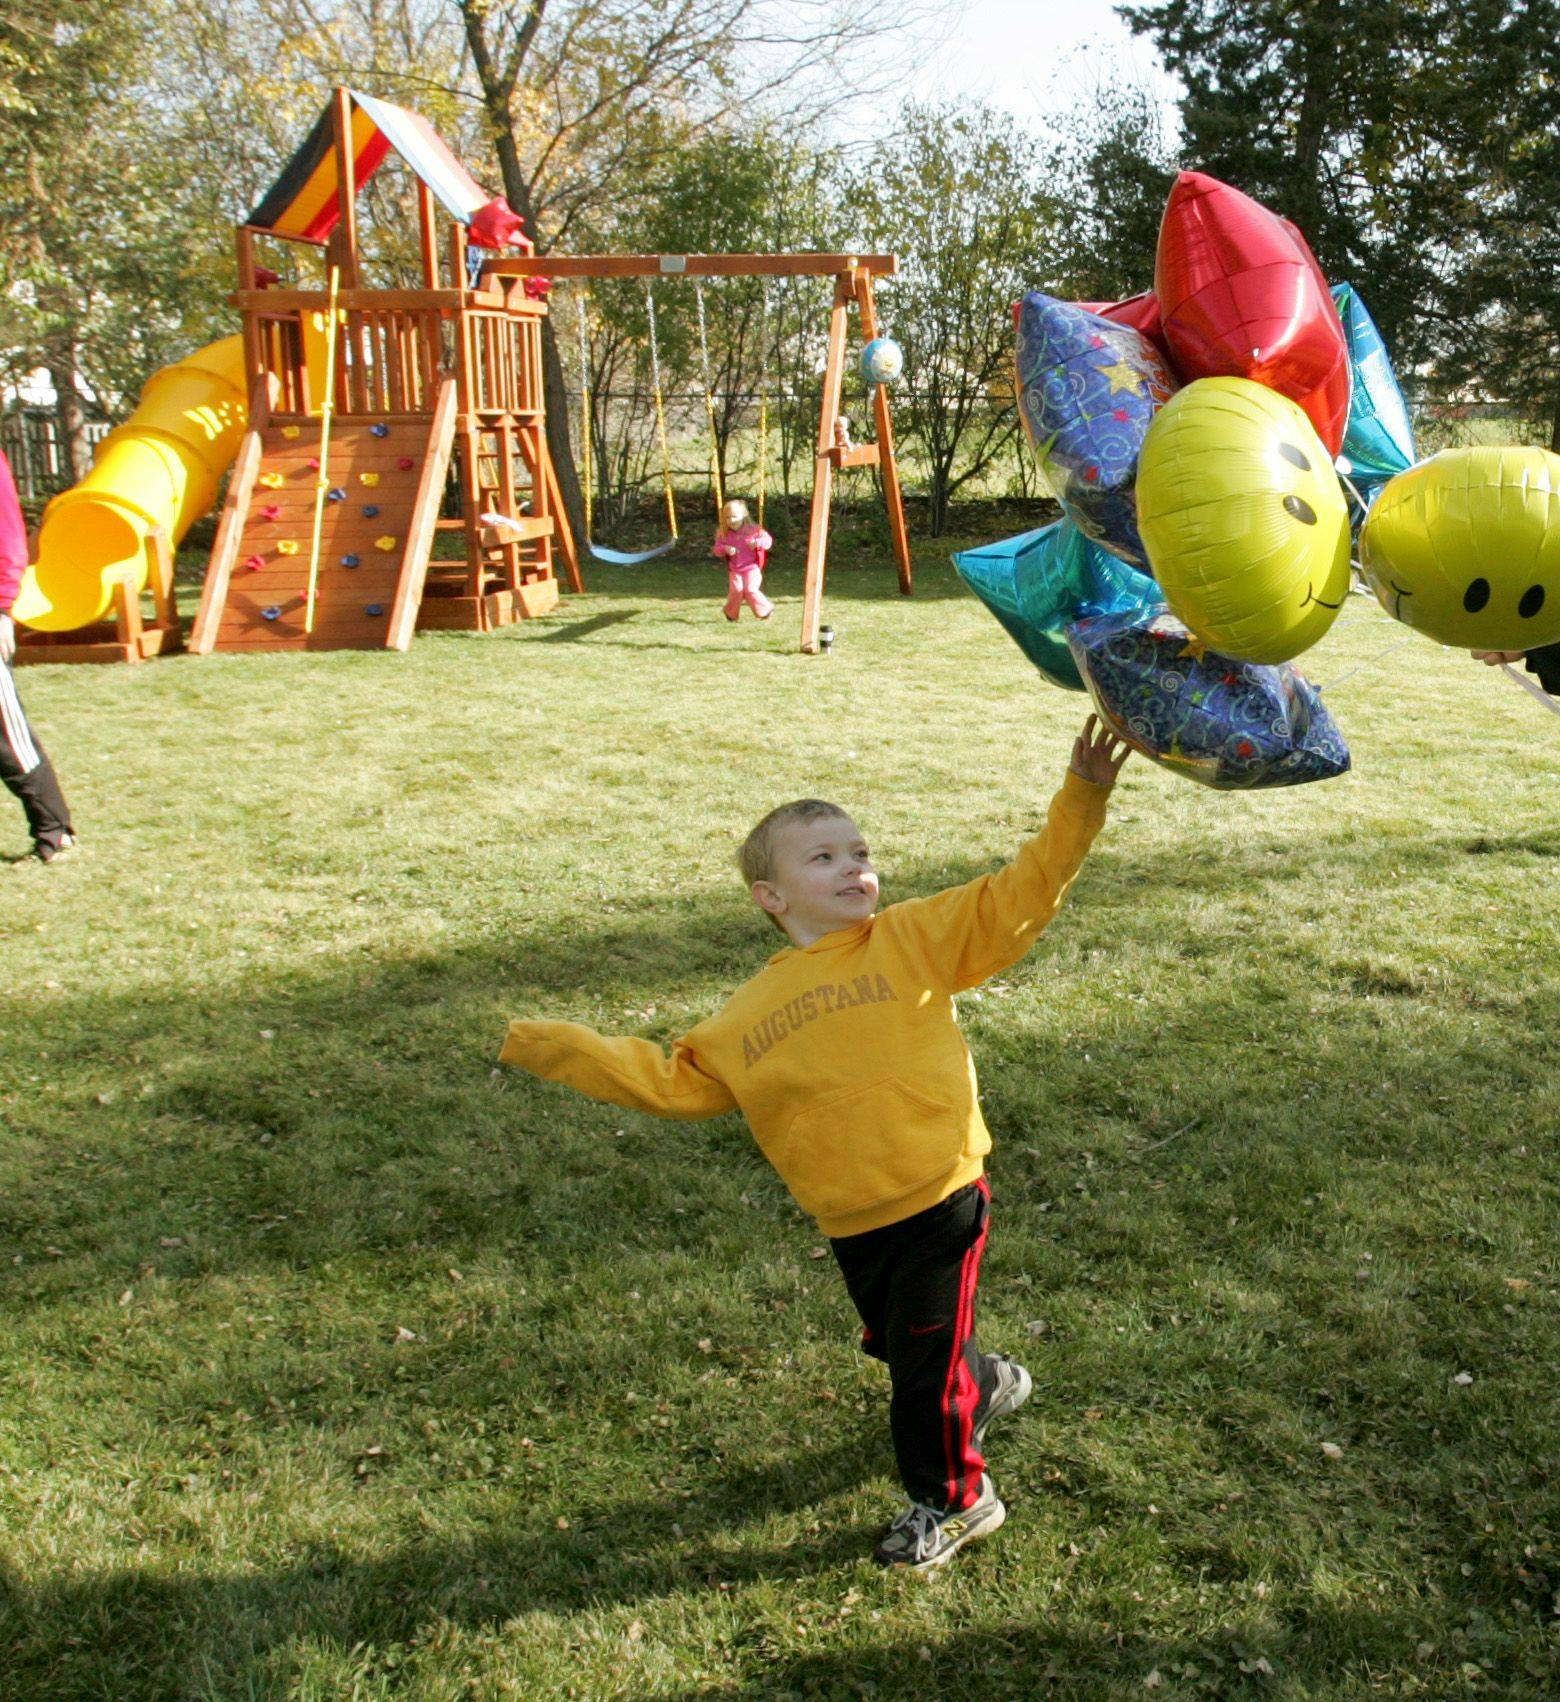 Owen Payton, who has suffered with a serious heart defect, enjoys his new backyard play set, thanks to the Make-A-Wish Foundation.